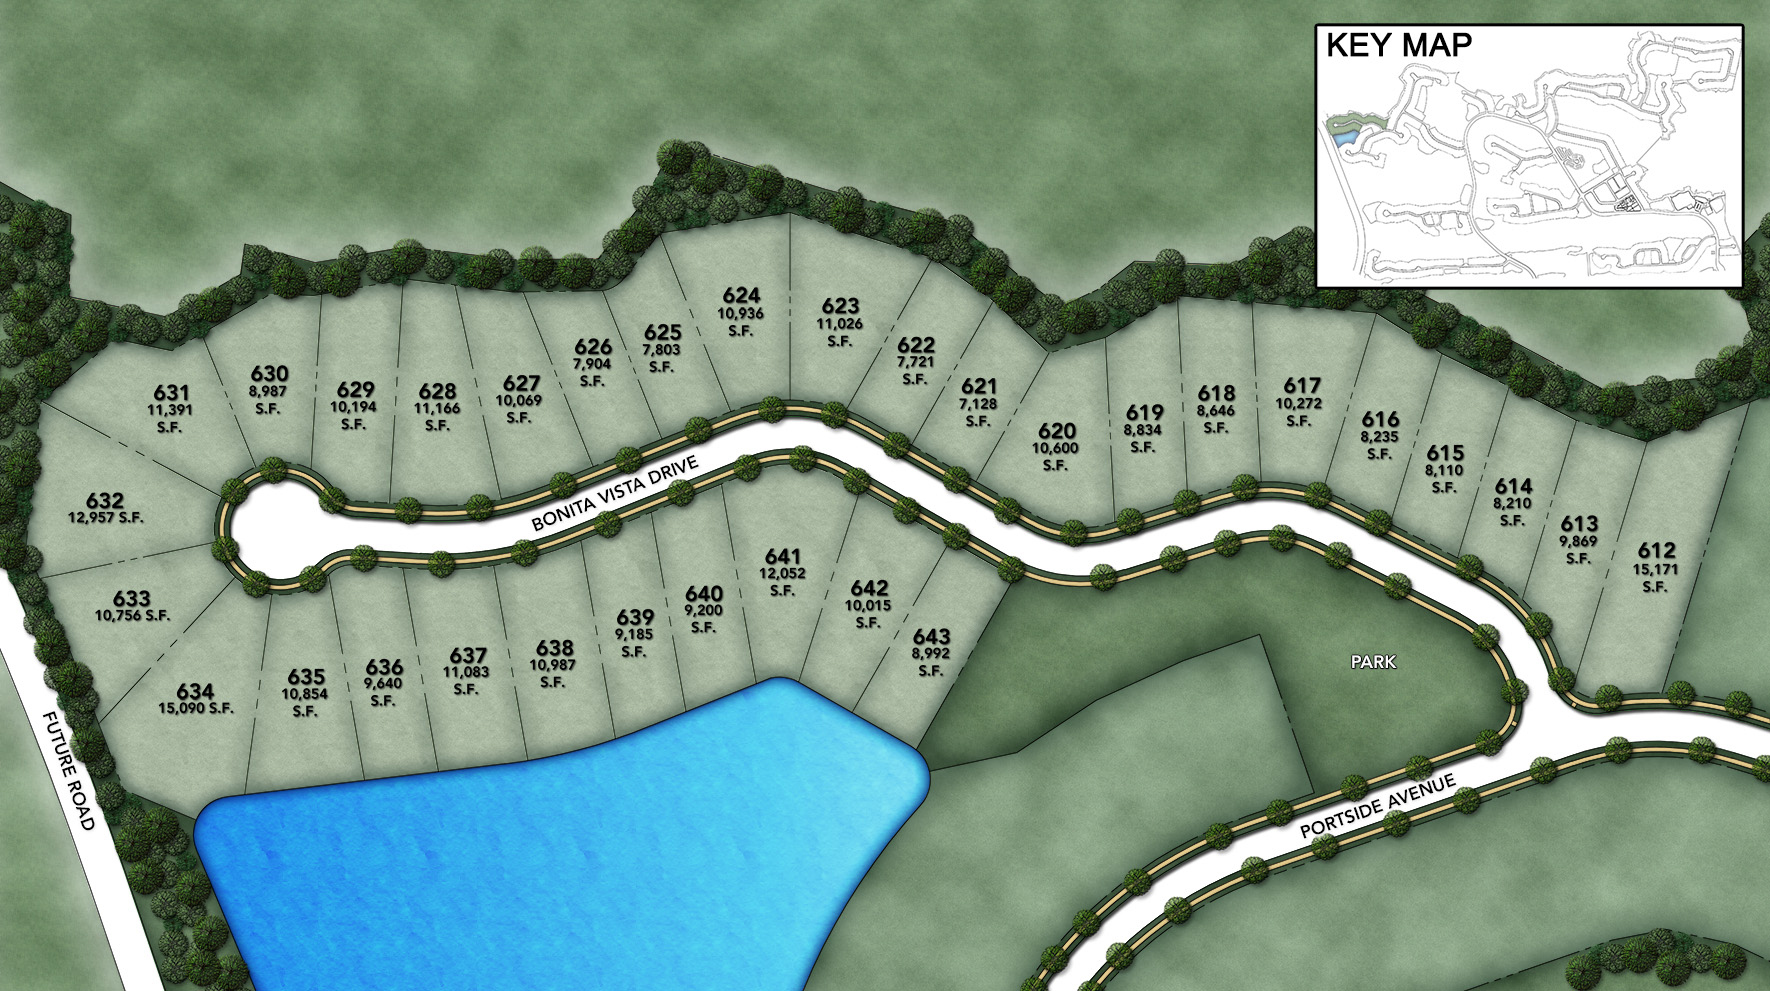 Coastal Oaks at Nocatee - Heritage Collection Bonita Vista Site Plan